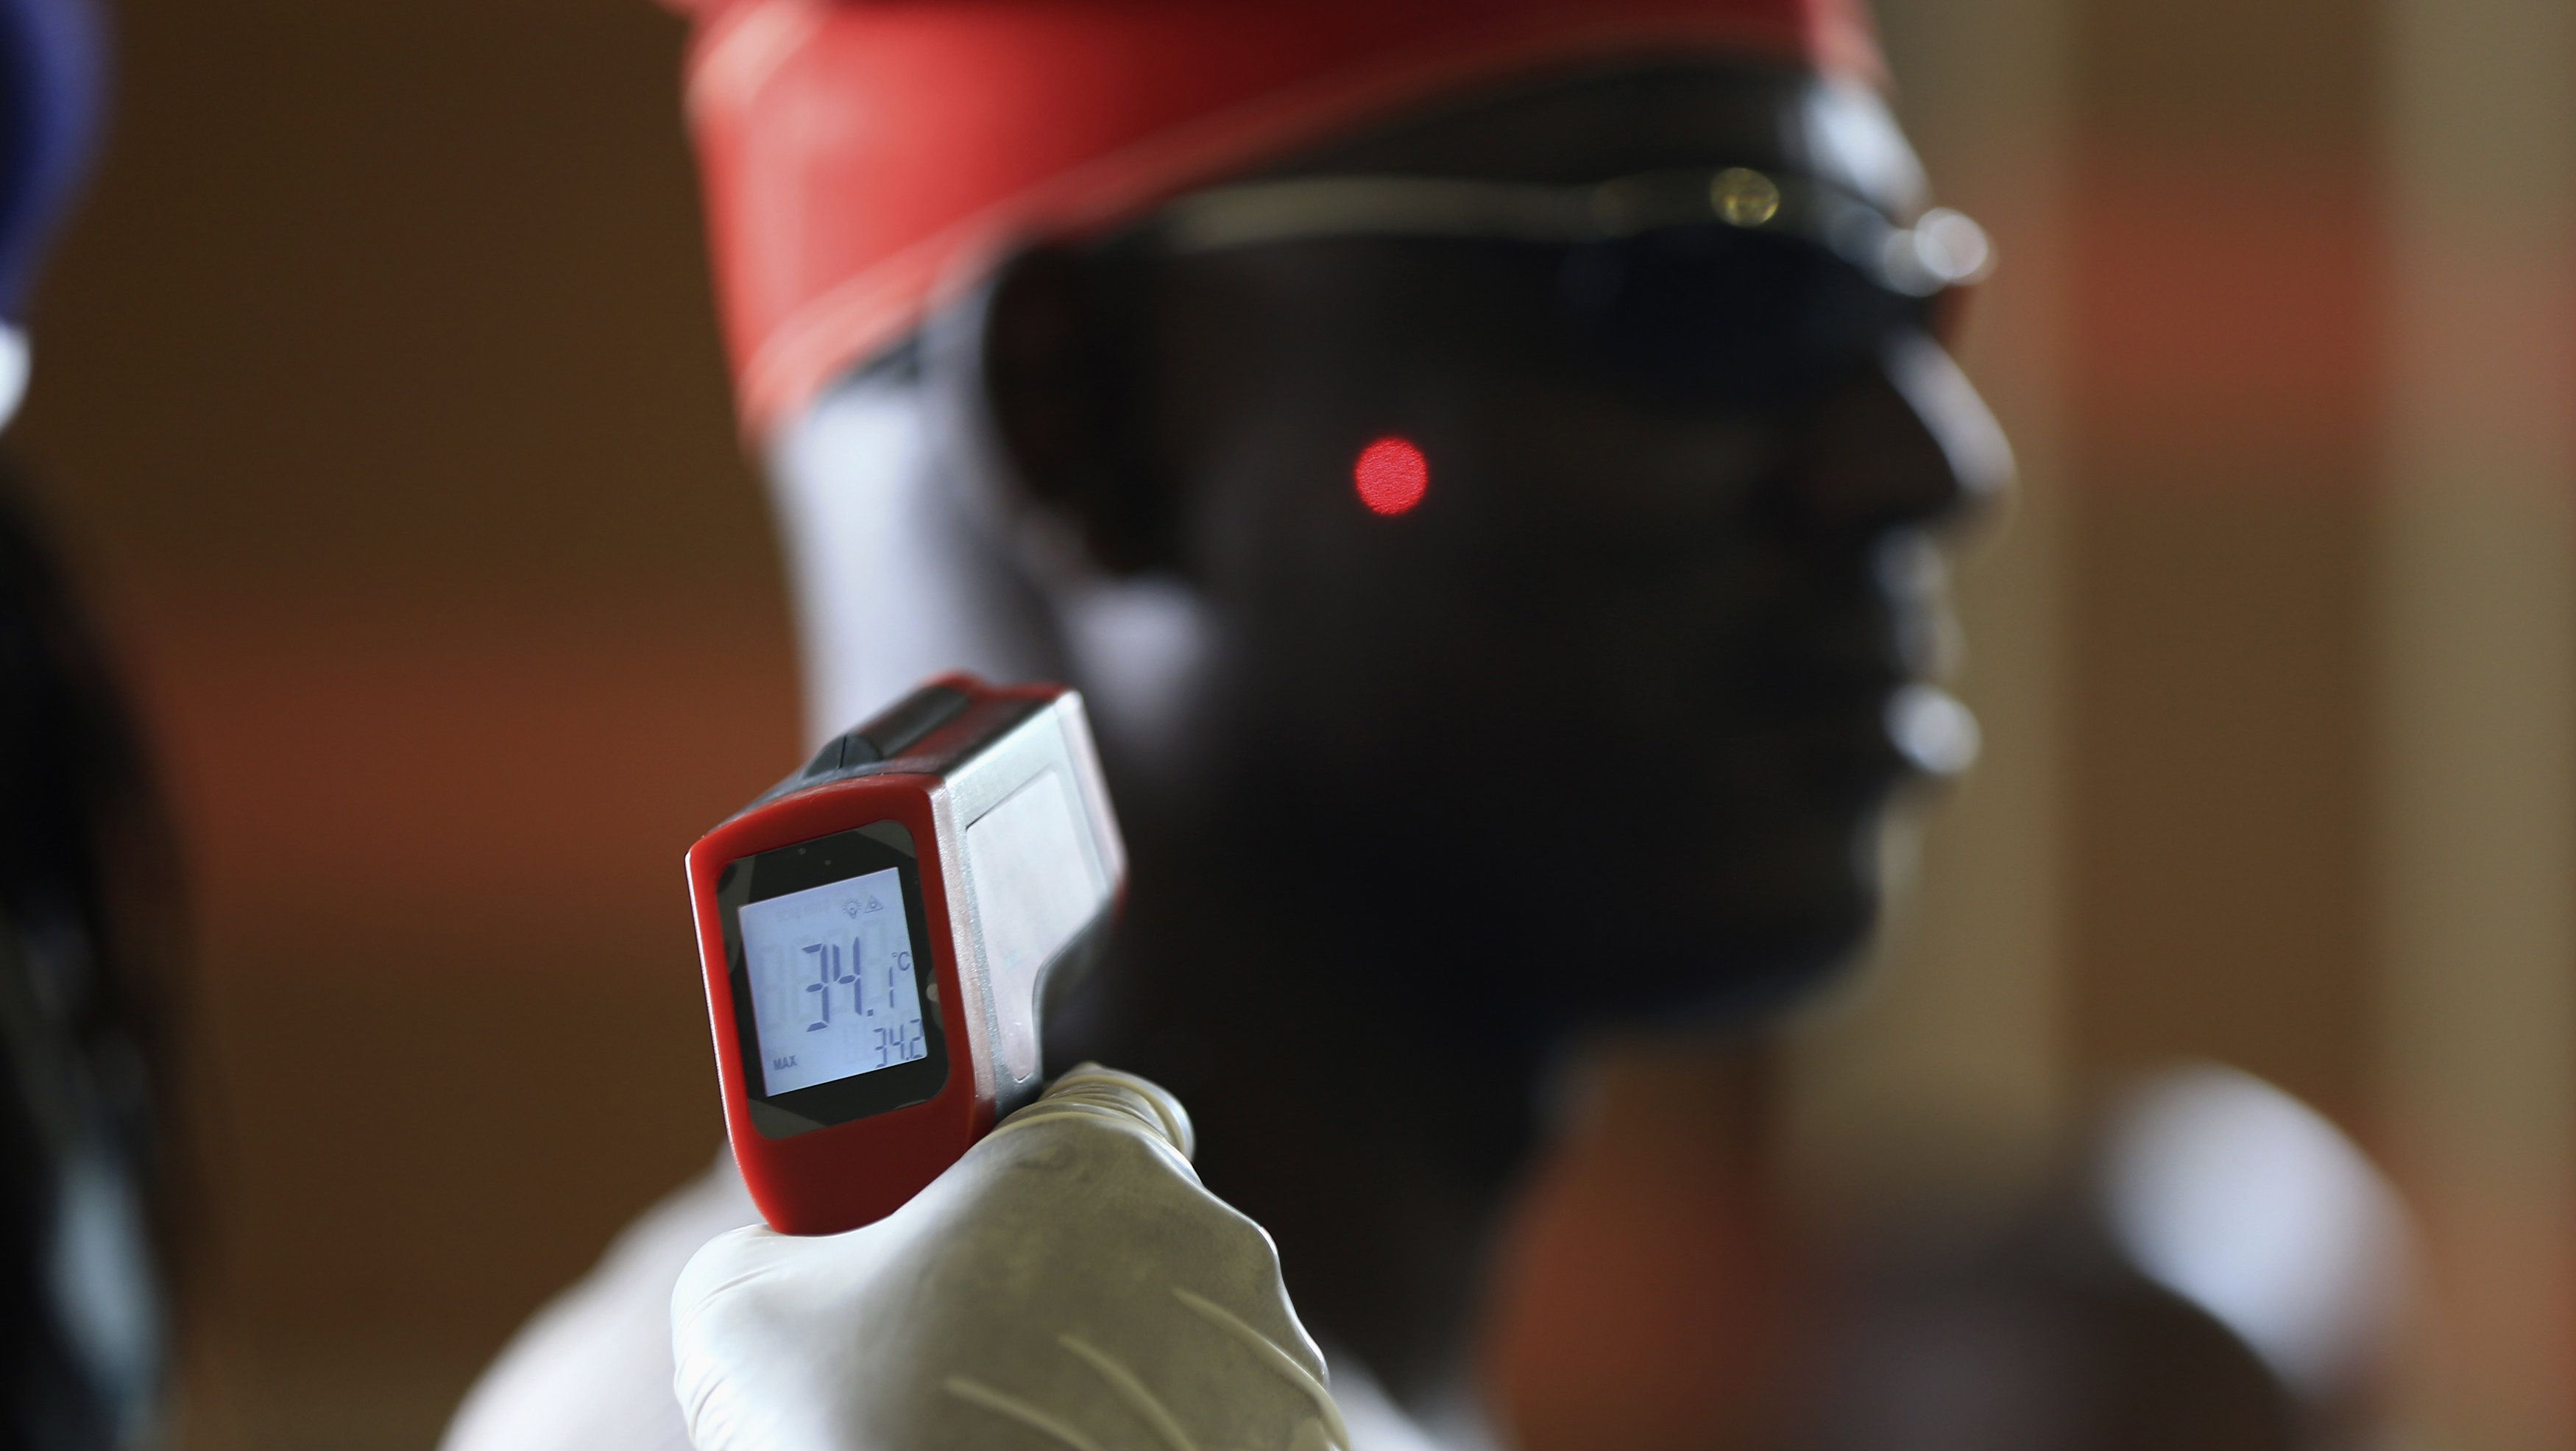 A man has his temperature taken using an infrared digital laser thermometer at the Nnamdi Azikiwe International Airport in Abuja, August 11, 2014. Nigeria's commercial capital Lagos has 10 confirmed cases of Ebola, up from seven at the last count, and two patients have died, including the Liberian who brought the virus in, the health minister said on Monday. REUTERS/Afolabi Sotunde